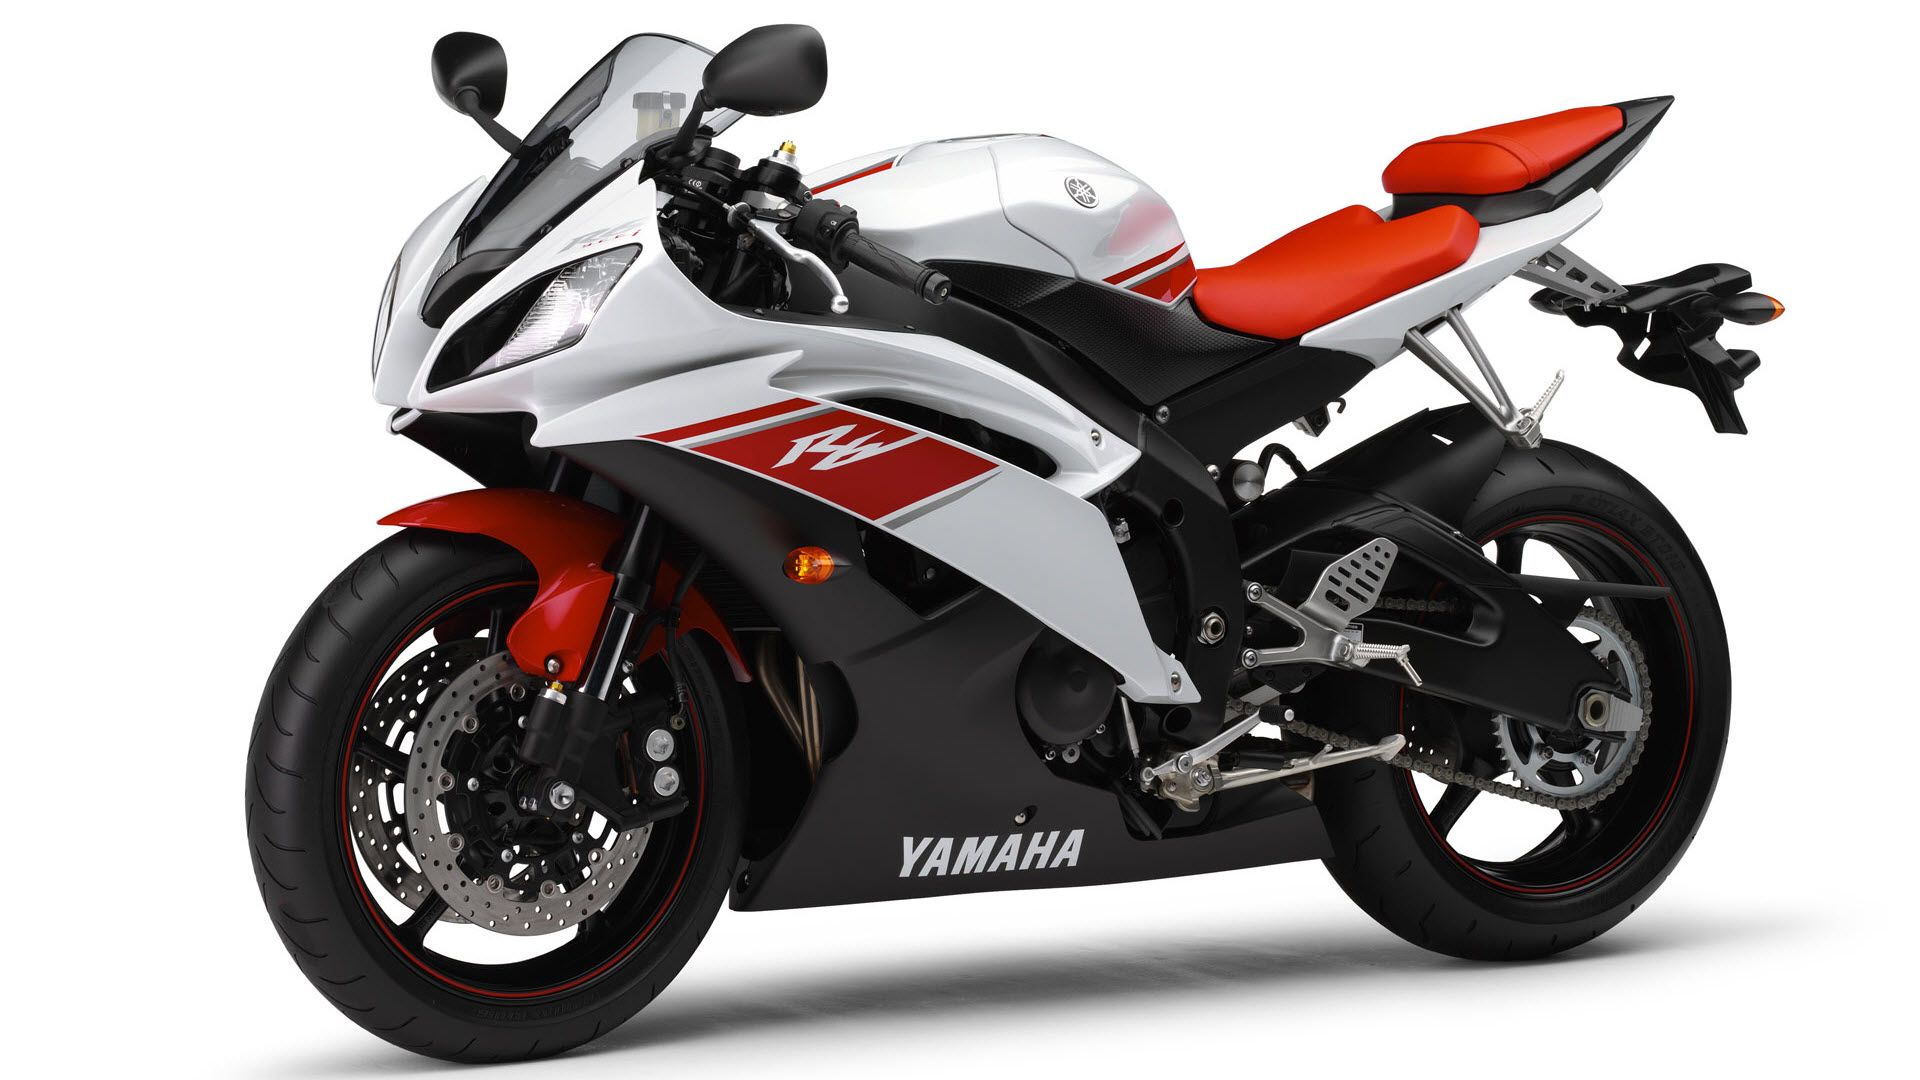 Bike Motorcycle Yamaha New Model 2015 Http Www Stosum Com